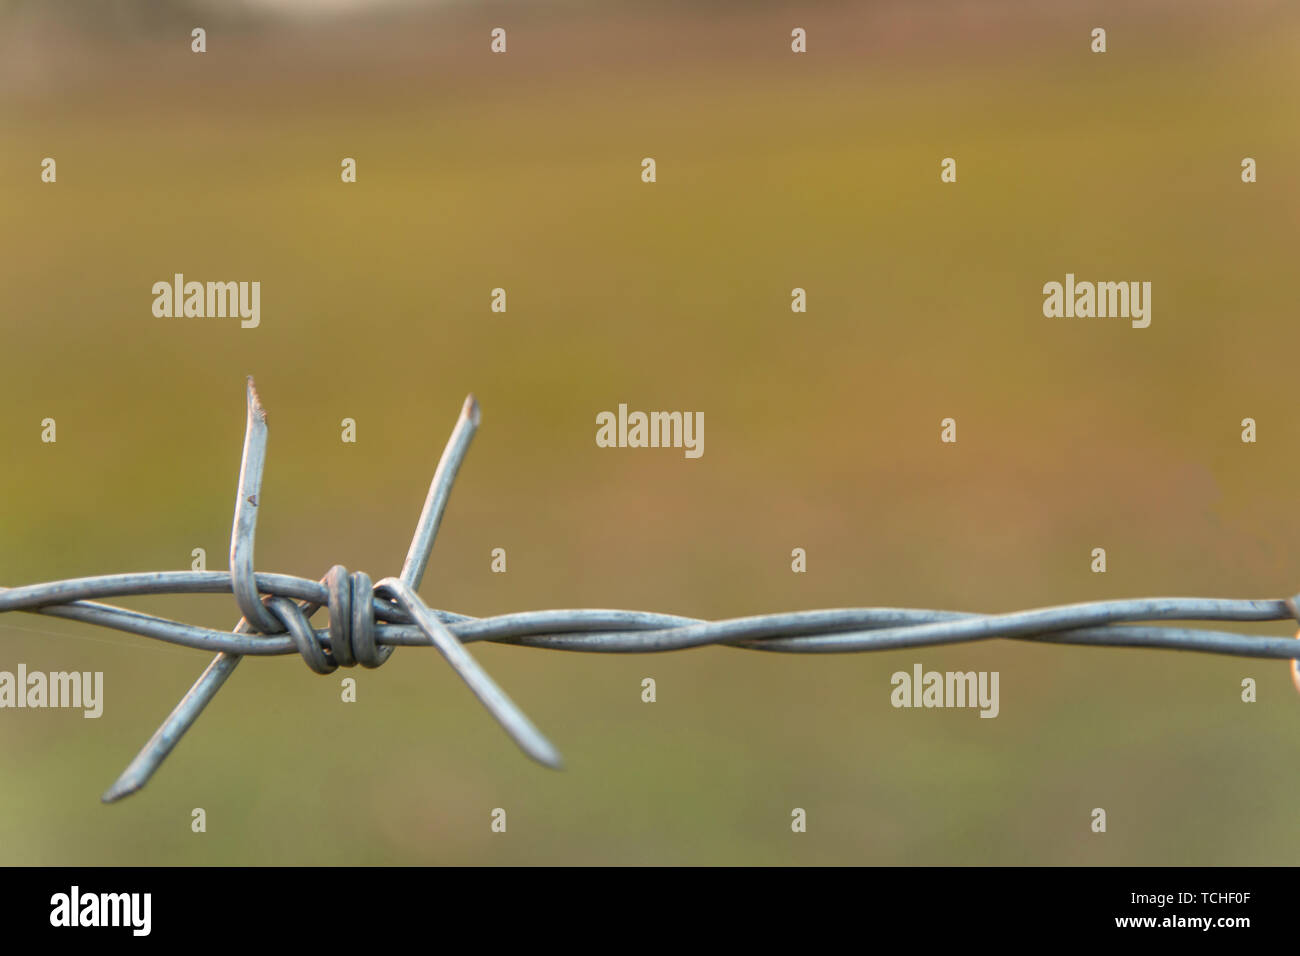 Barbed wire with blur nature background with copy space Stock Photo